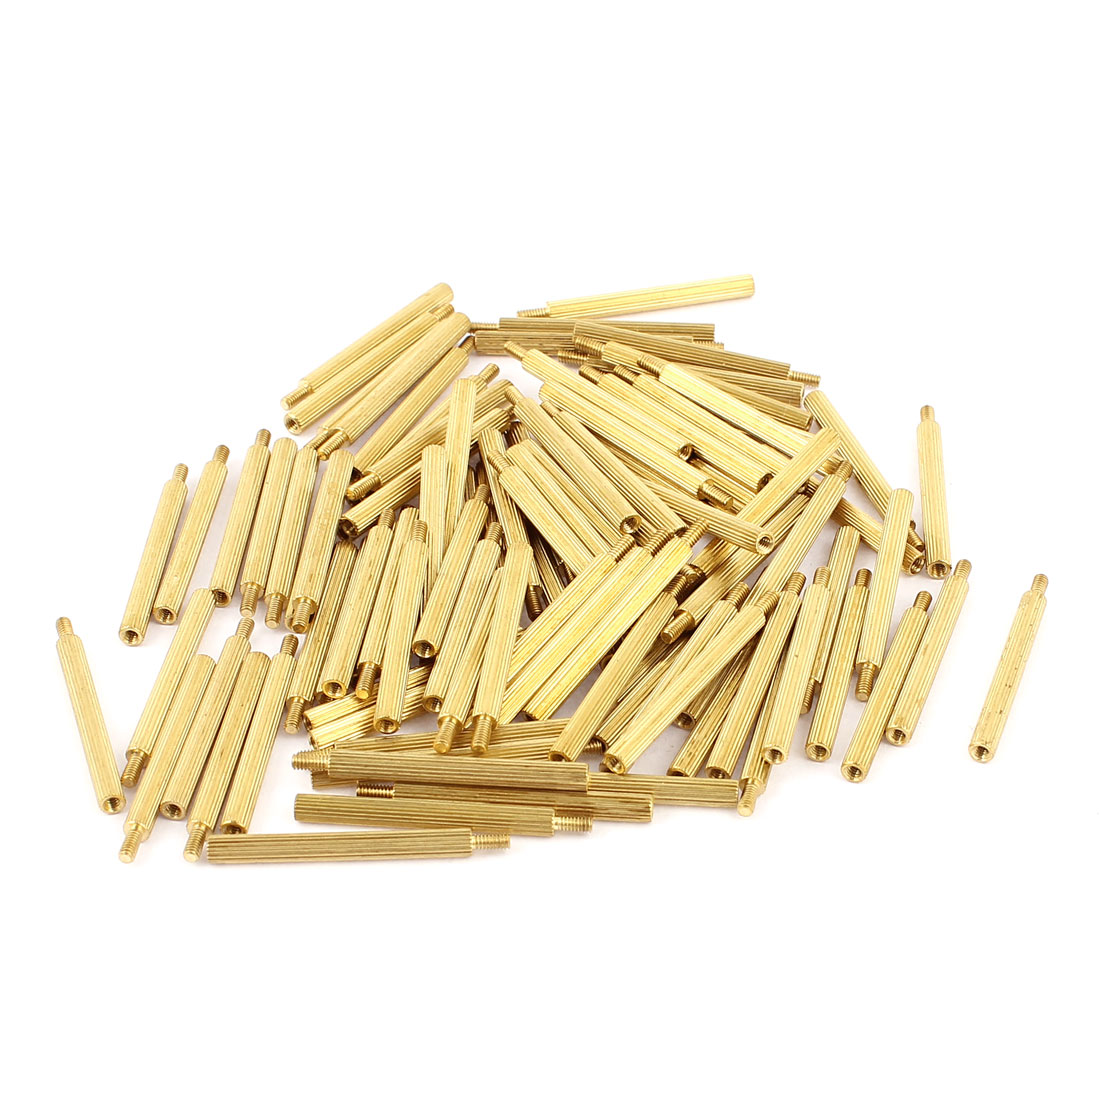 100Pcs M2 Male Female Brass PCB Standoffs Hexagonal Spacers